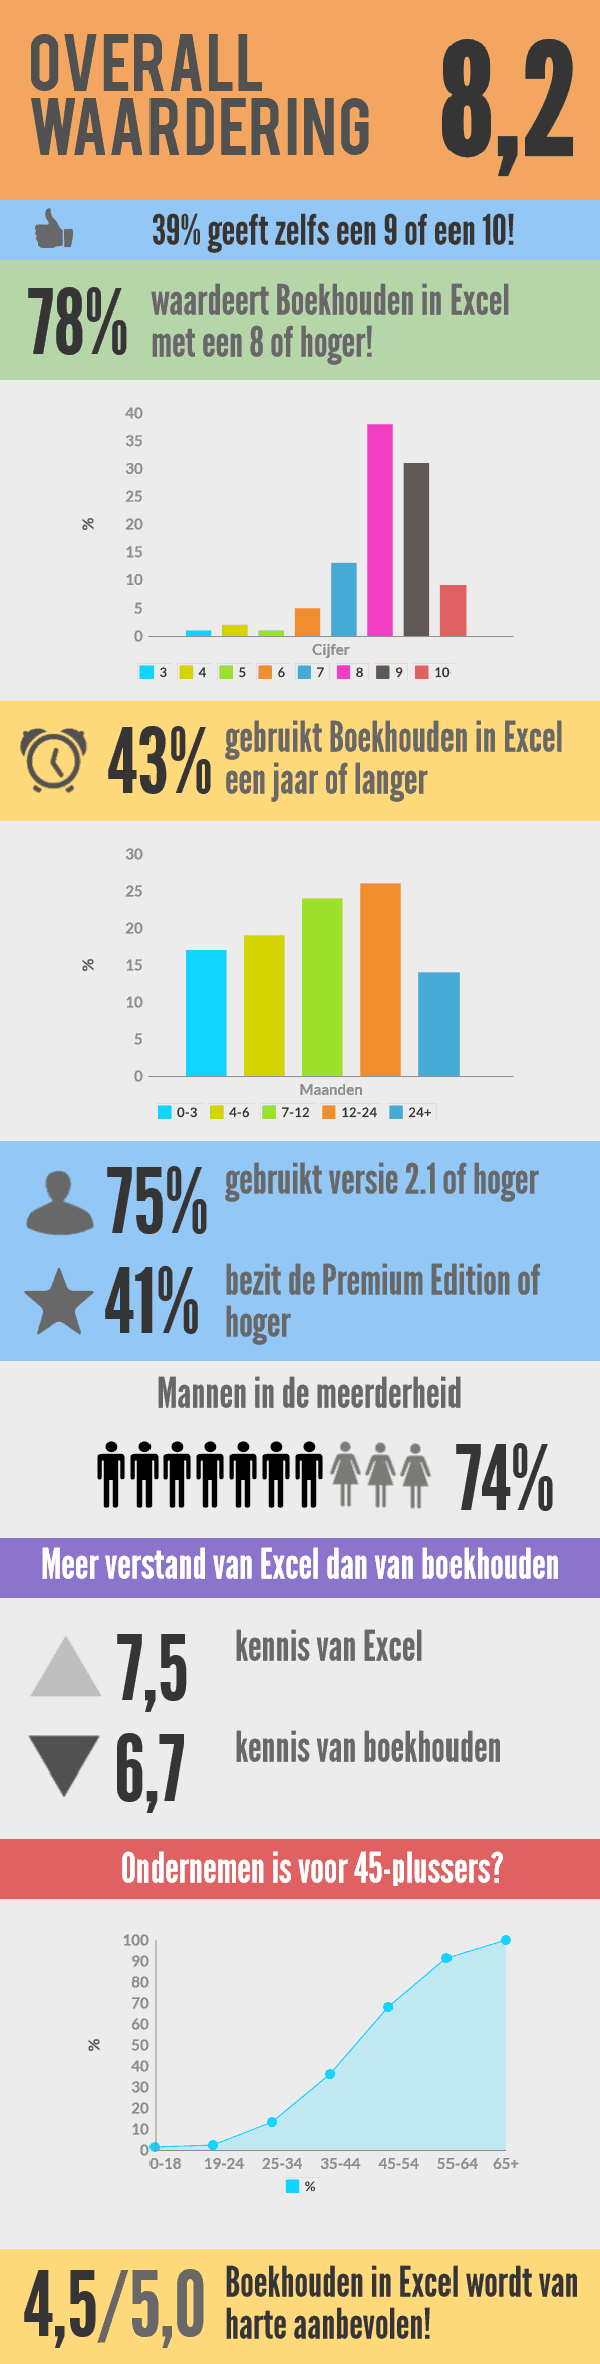 Resultaten klantenonderzoek september 2013